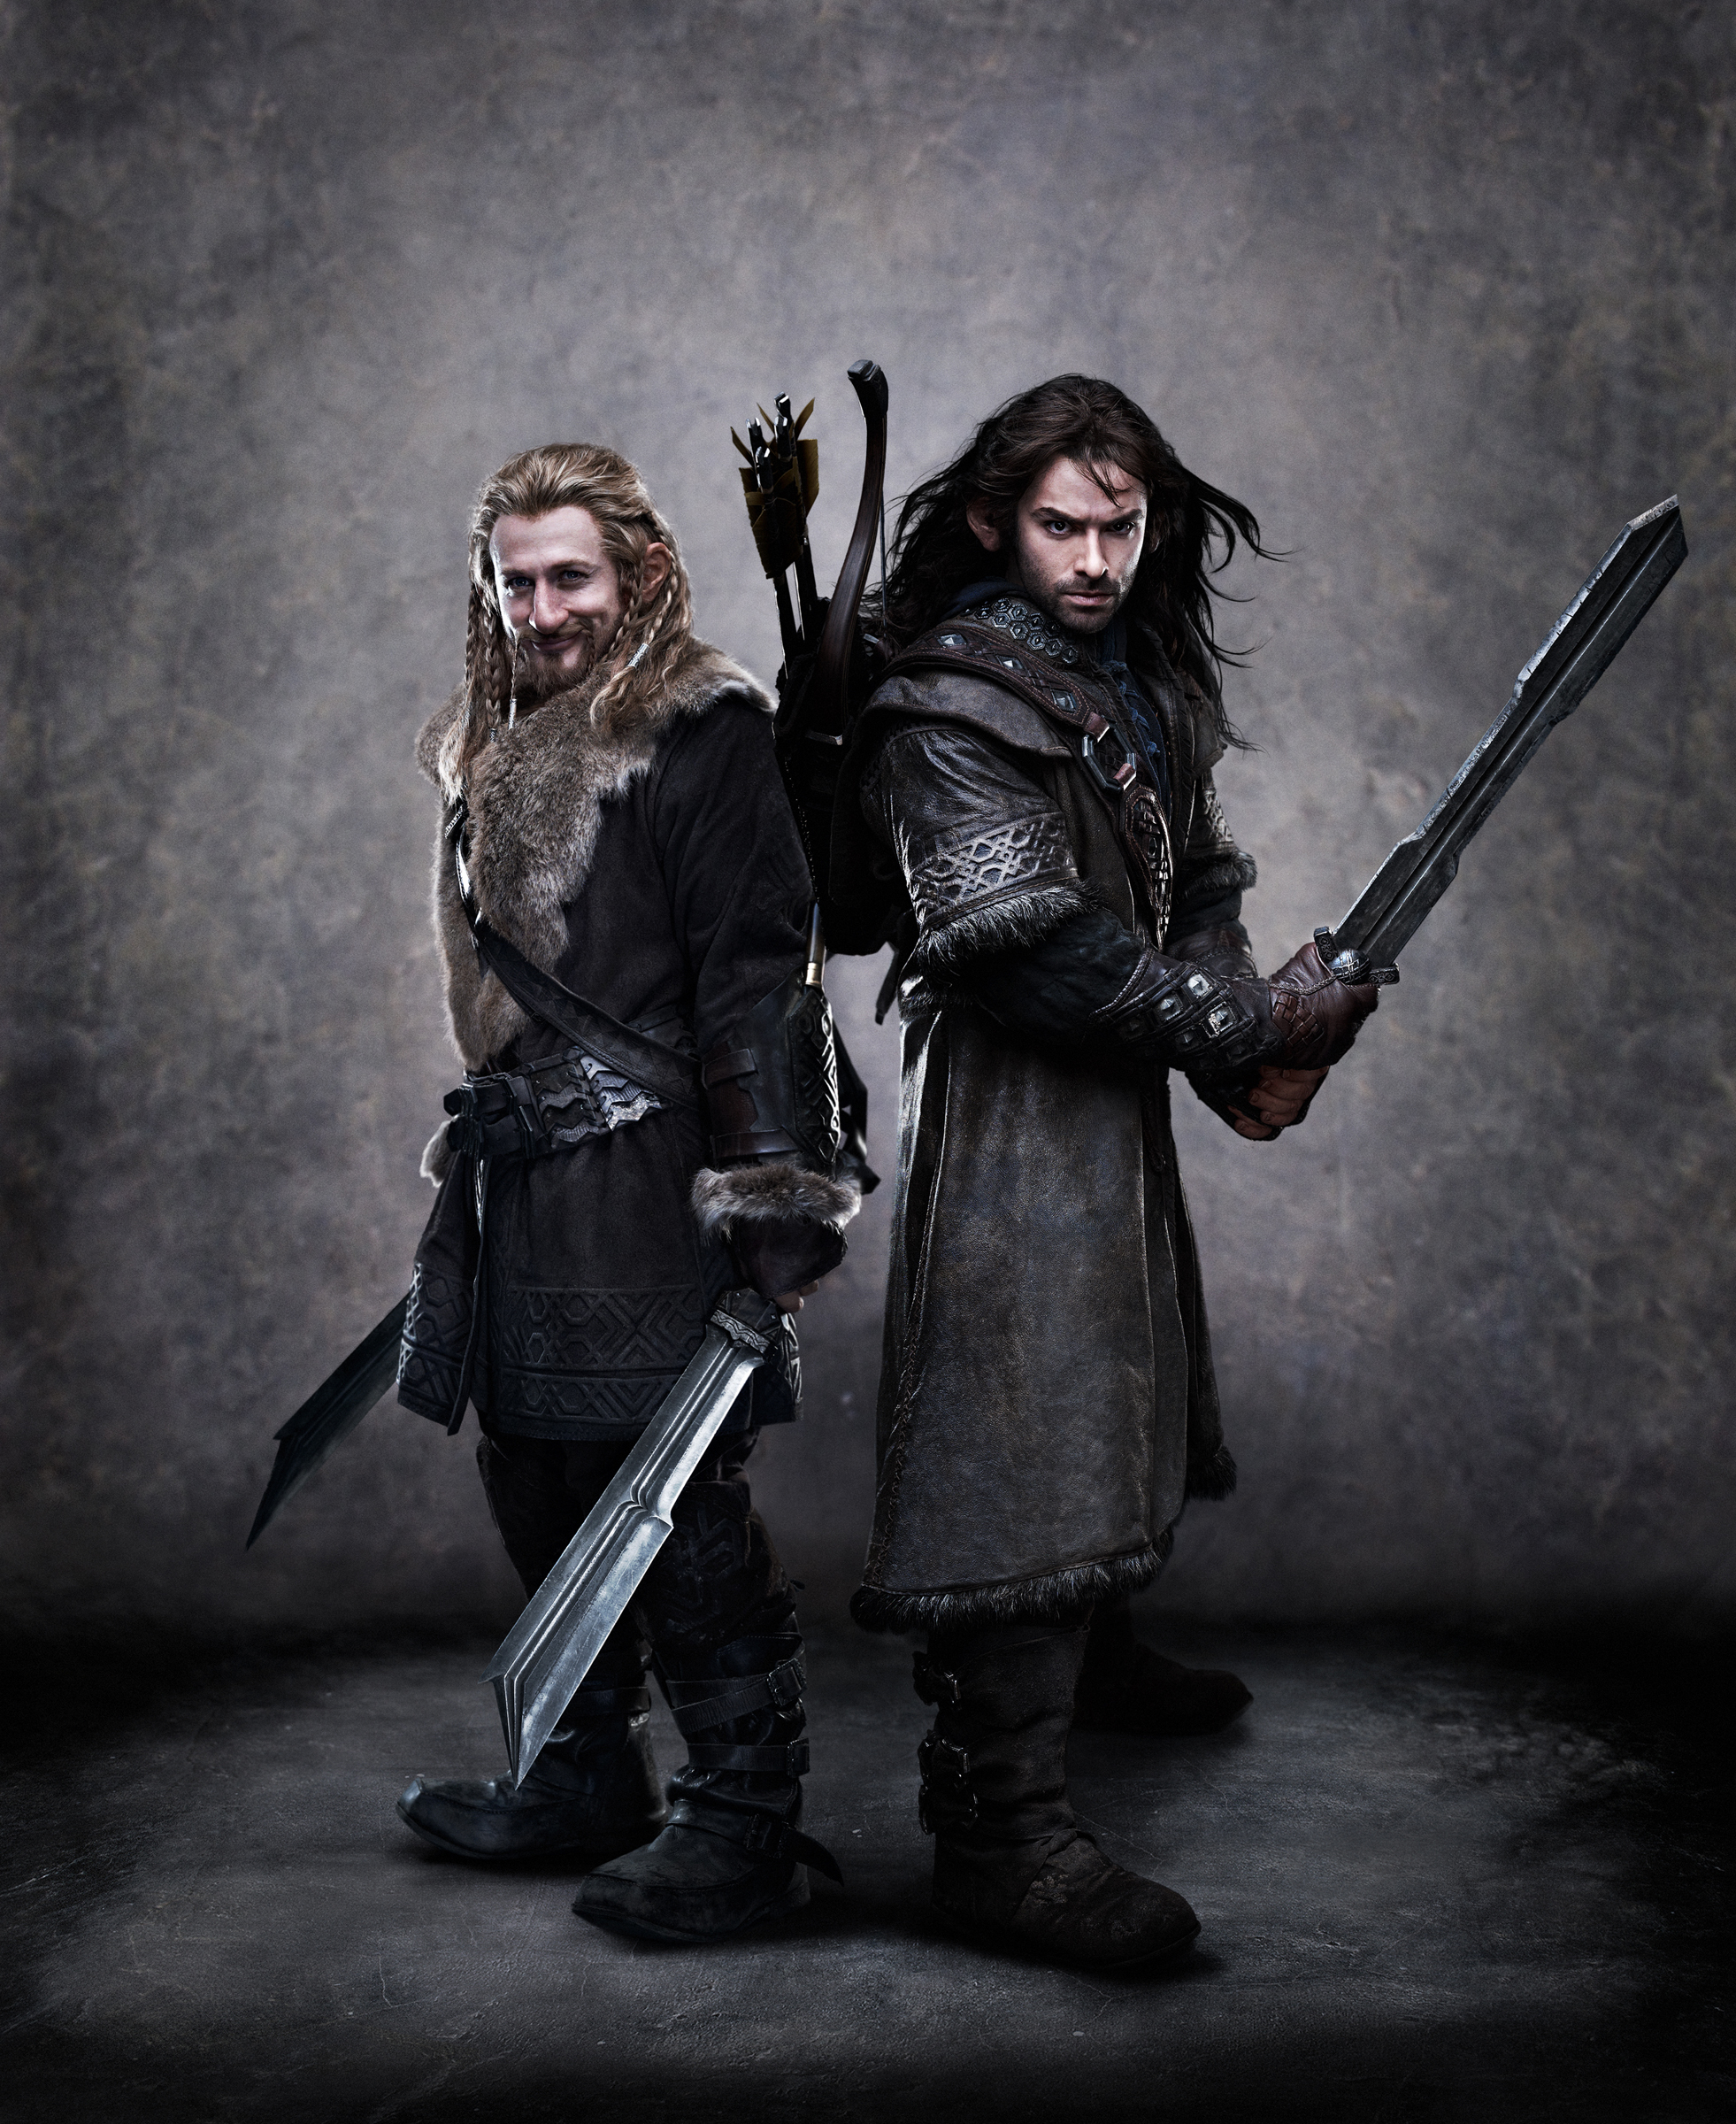 dwarfs The Hobbit brothers Kili Fili Wallpapers 1962x2400